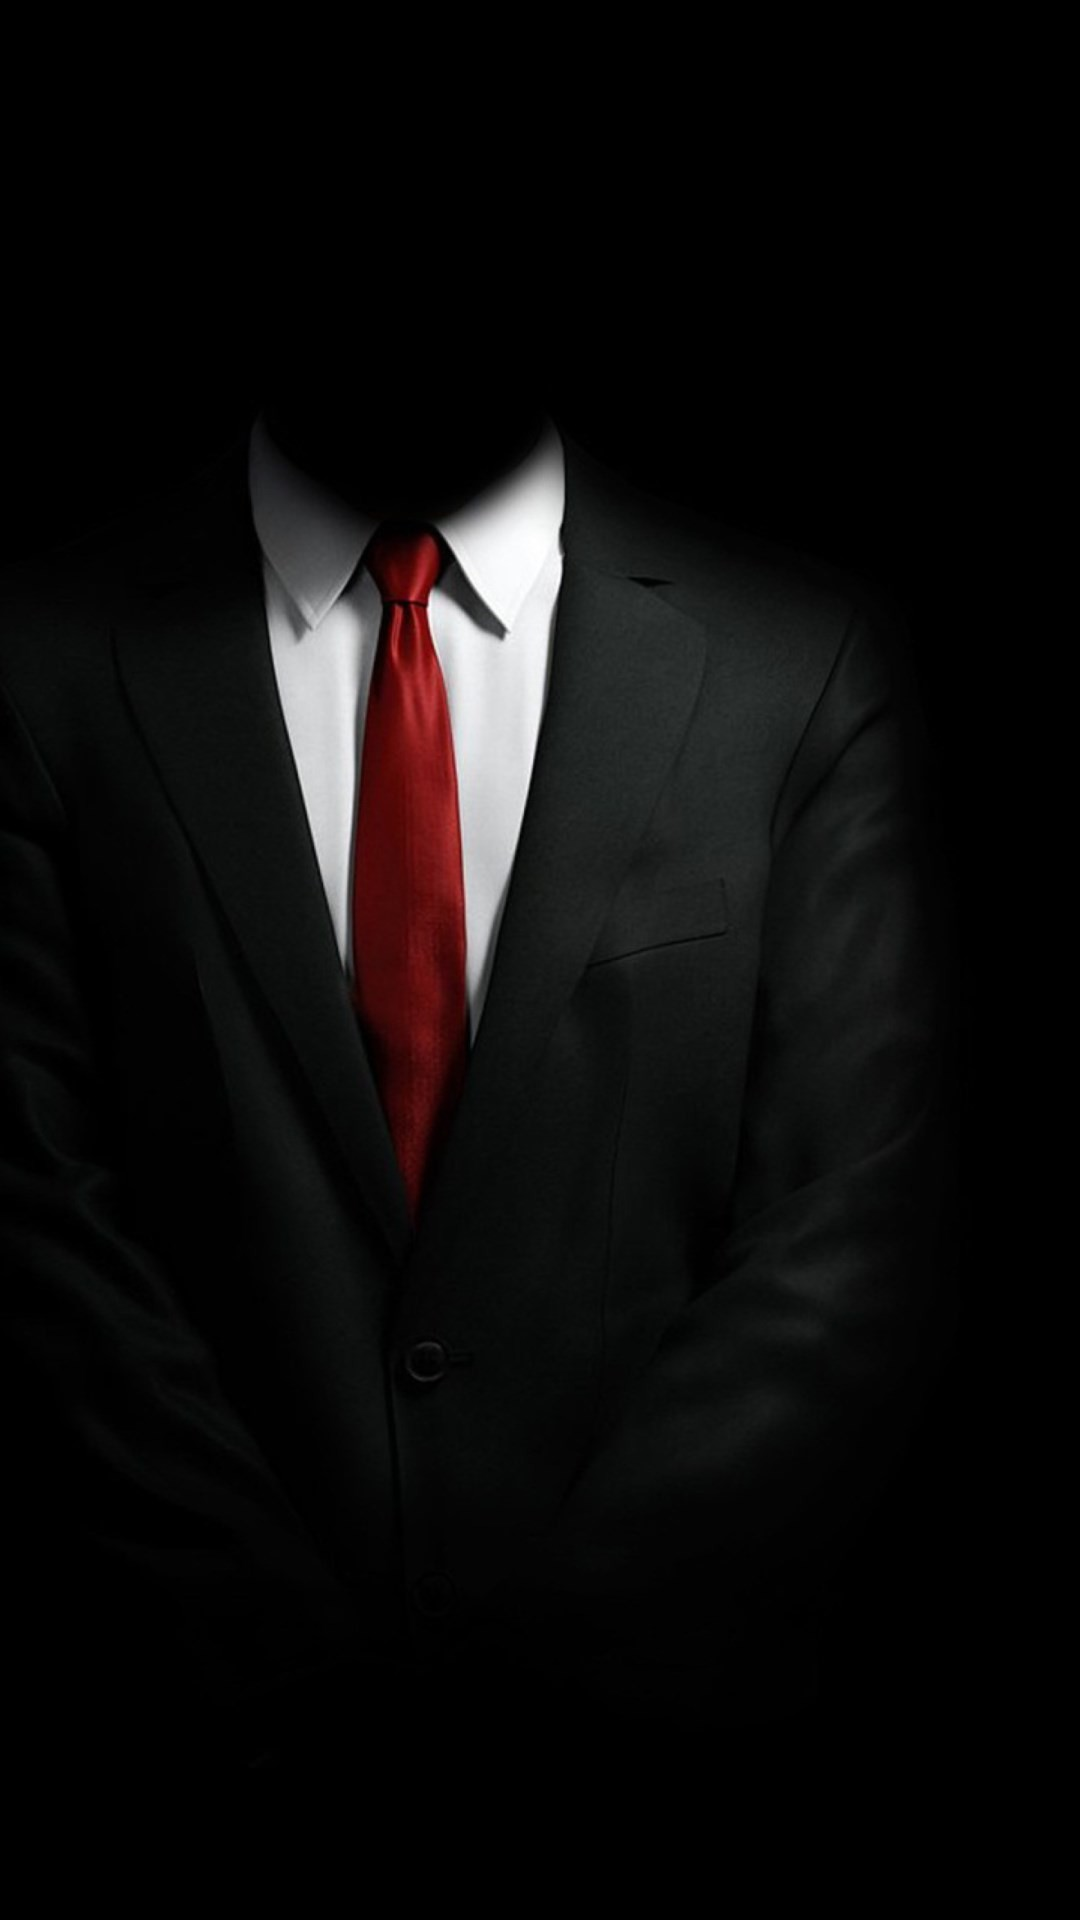 anonymous hd wallpaper for iphone